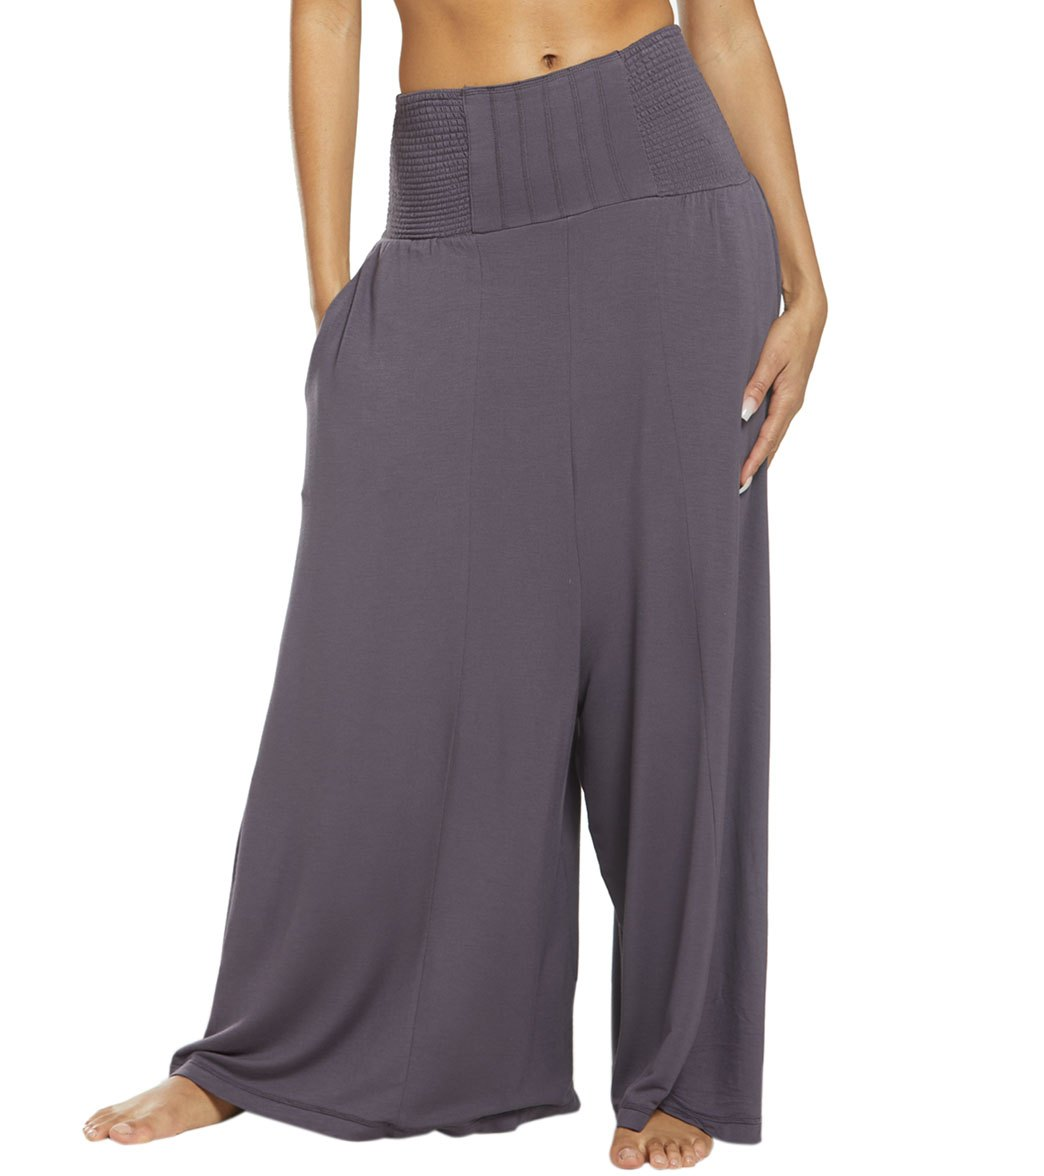 Free People Movement Going Places Convertible Pants - Graphite Spandex